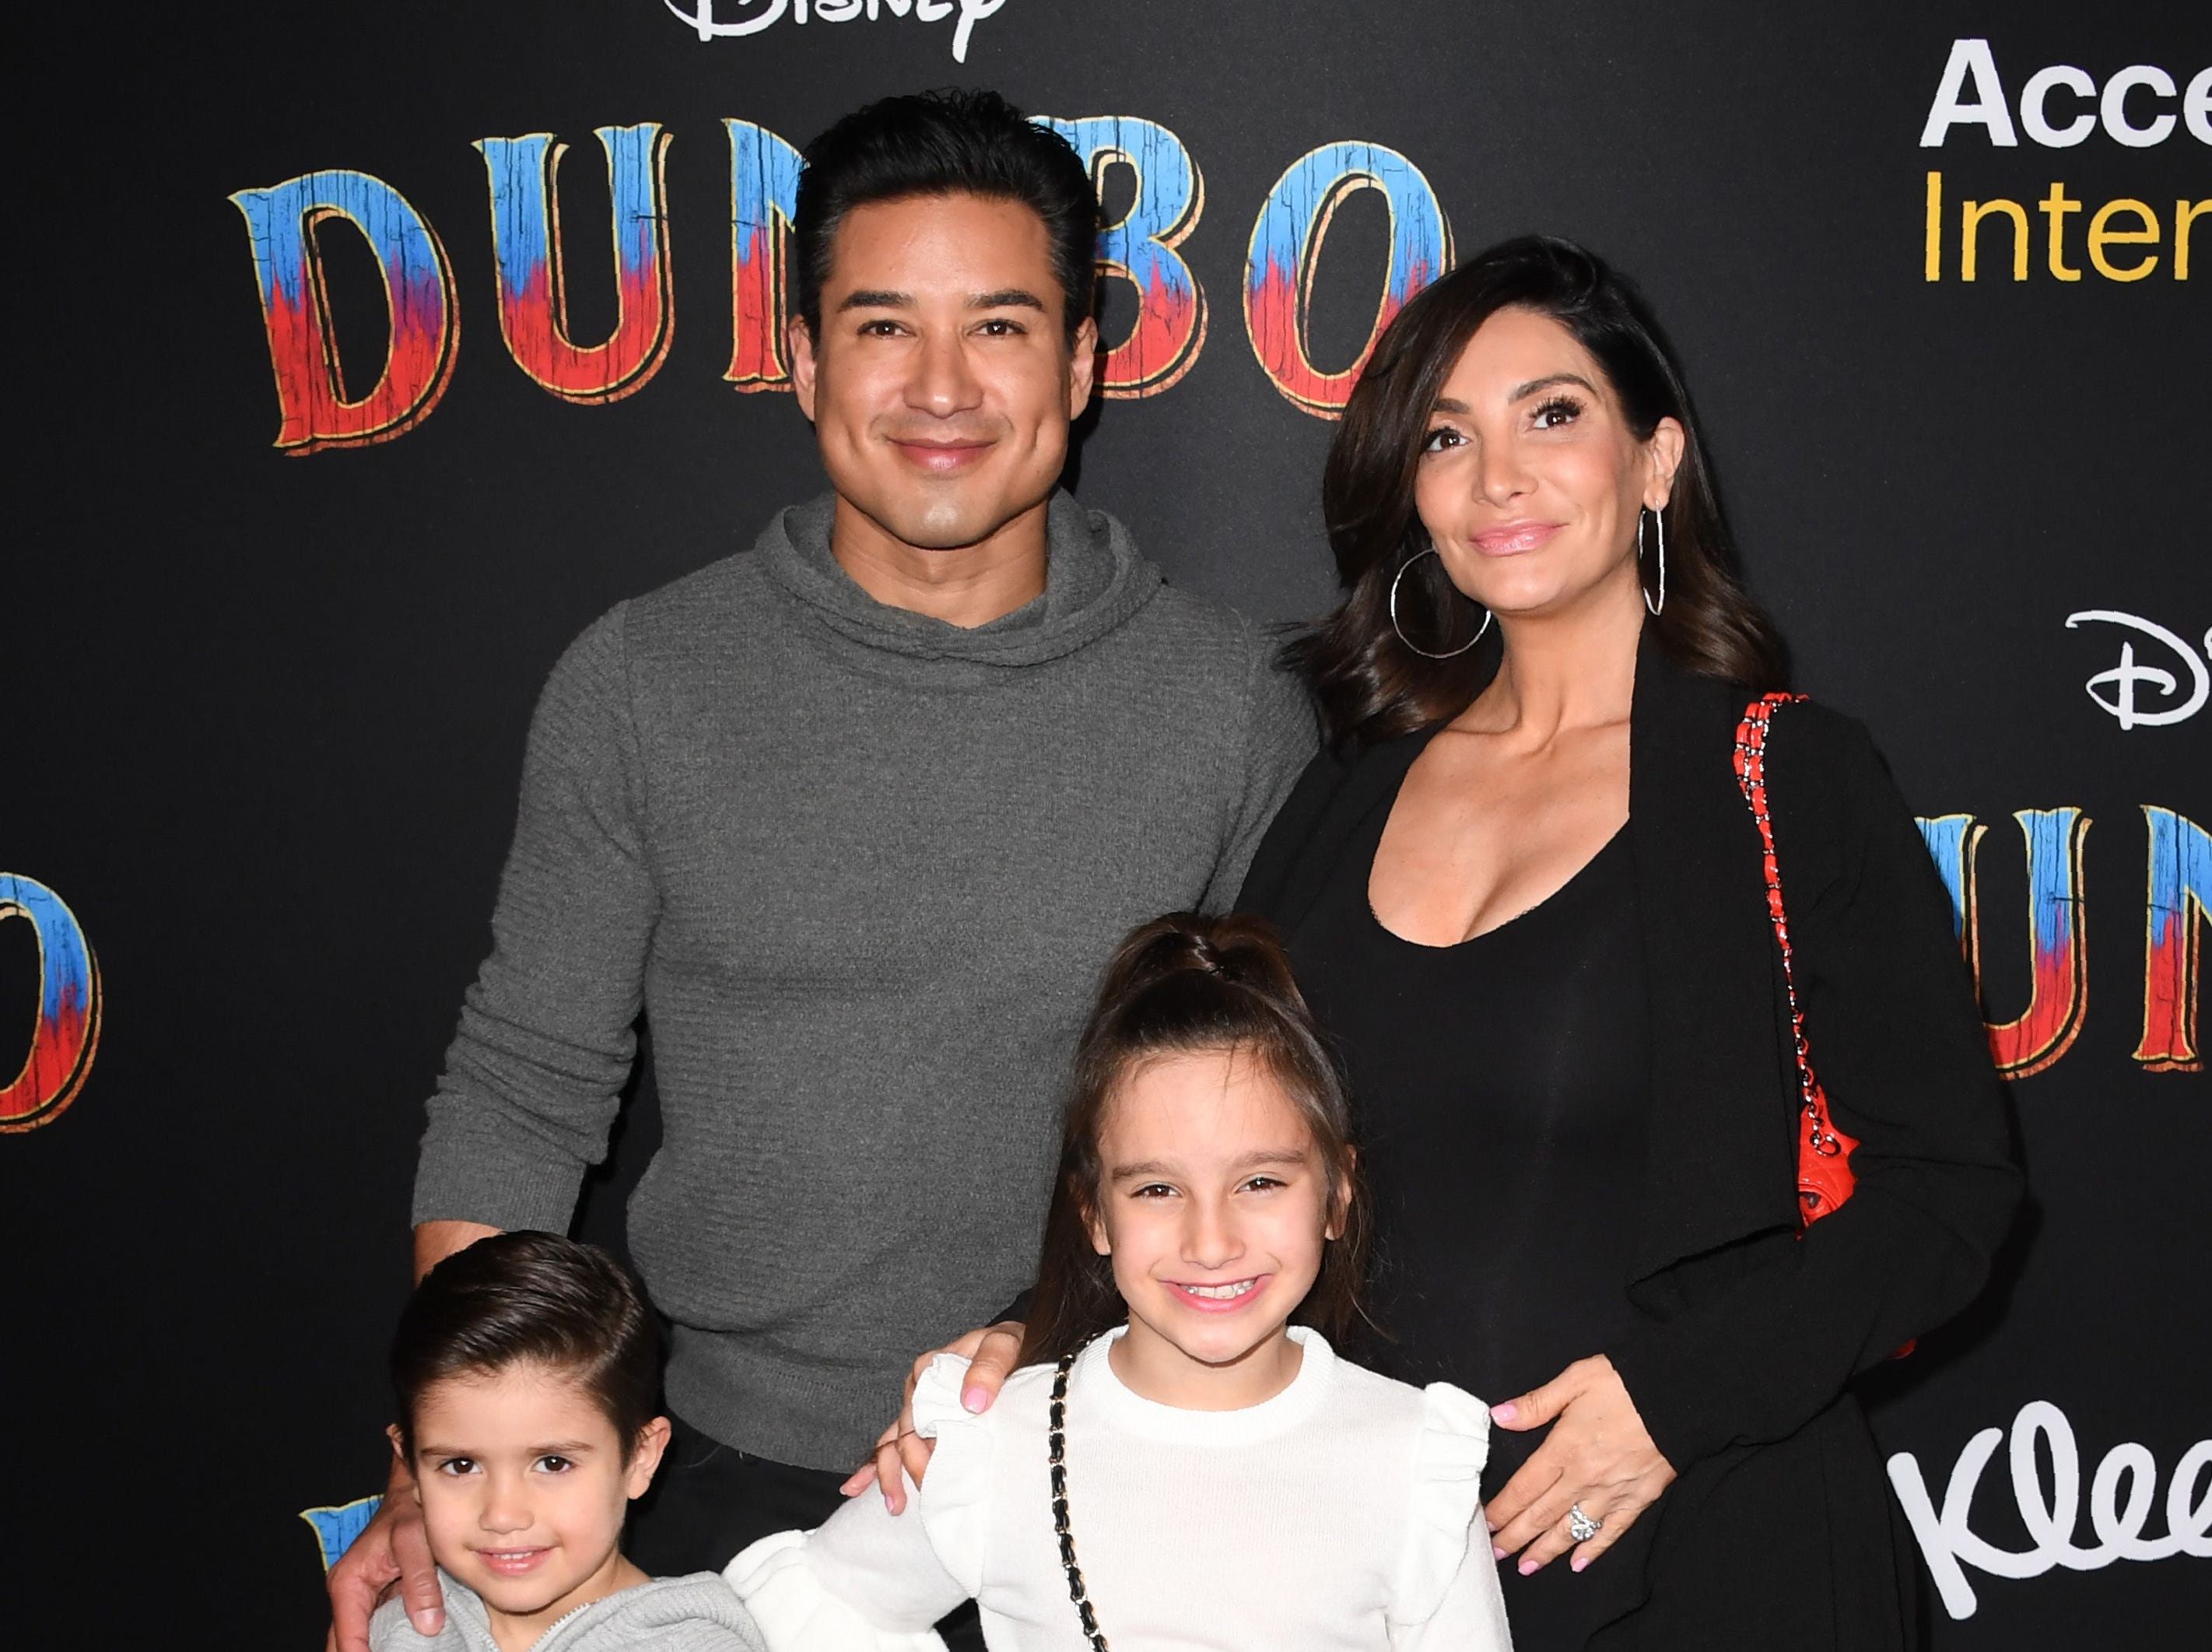 """TV host Mario Lopez, his wife Courtney Laine Mazza and kids Dominic Lopez (L) and  Gia Francesca Lopez (R) arrive for the world premiere of Disney's """"Dumbo"""" at El Capitan theatre on March 11, 2019 in Hollywood. (Photo by Robyn Beck / AFP)ROBYN BECK/AFP/Getty Images ORG XMIT: Premiere ORIG FILE ID: AFP_1EI2A6"""